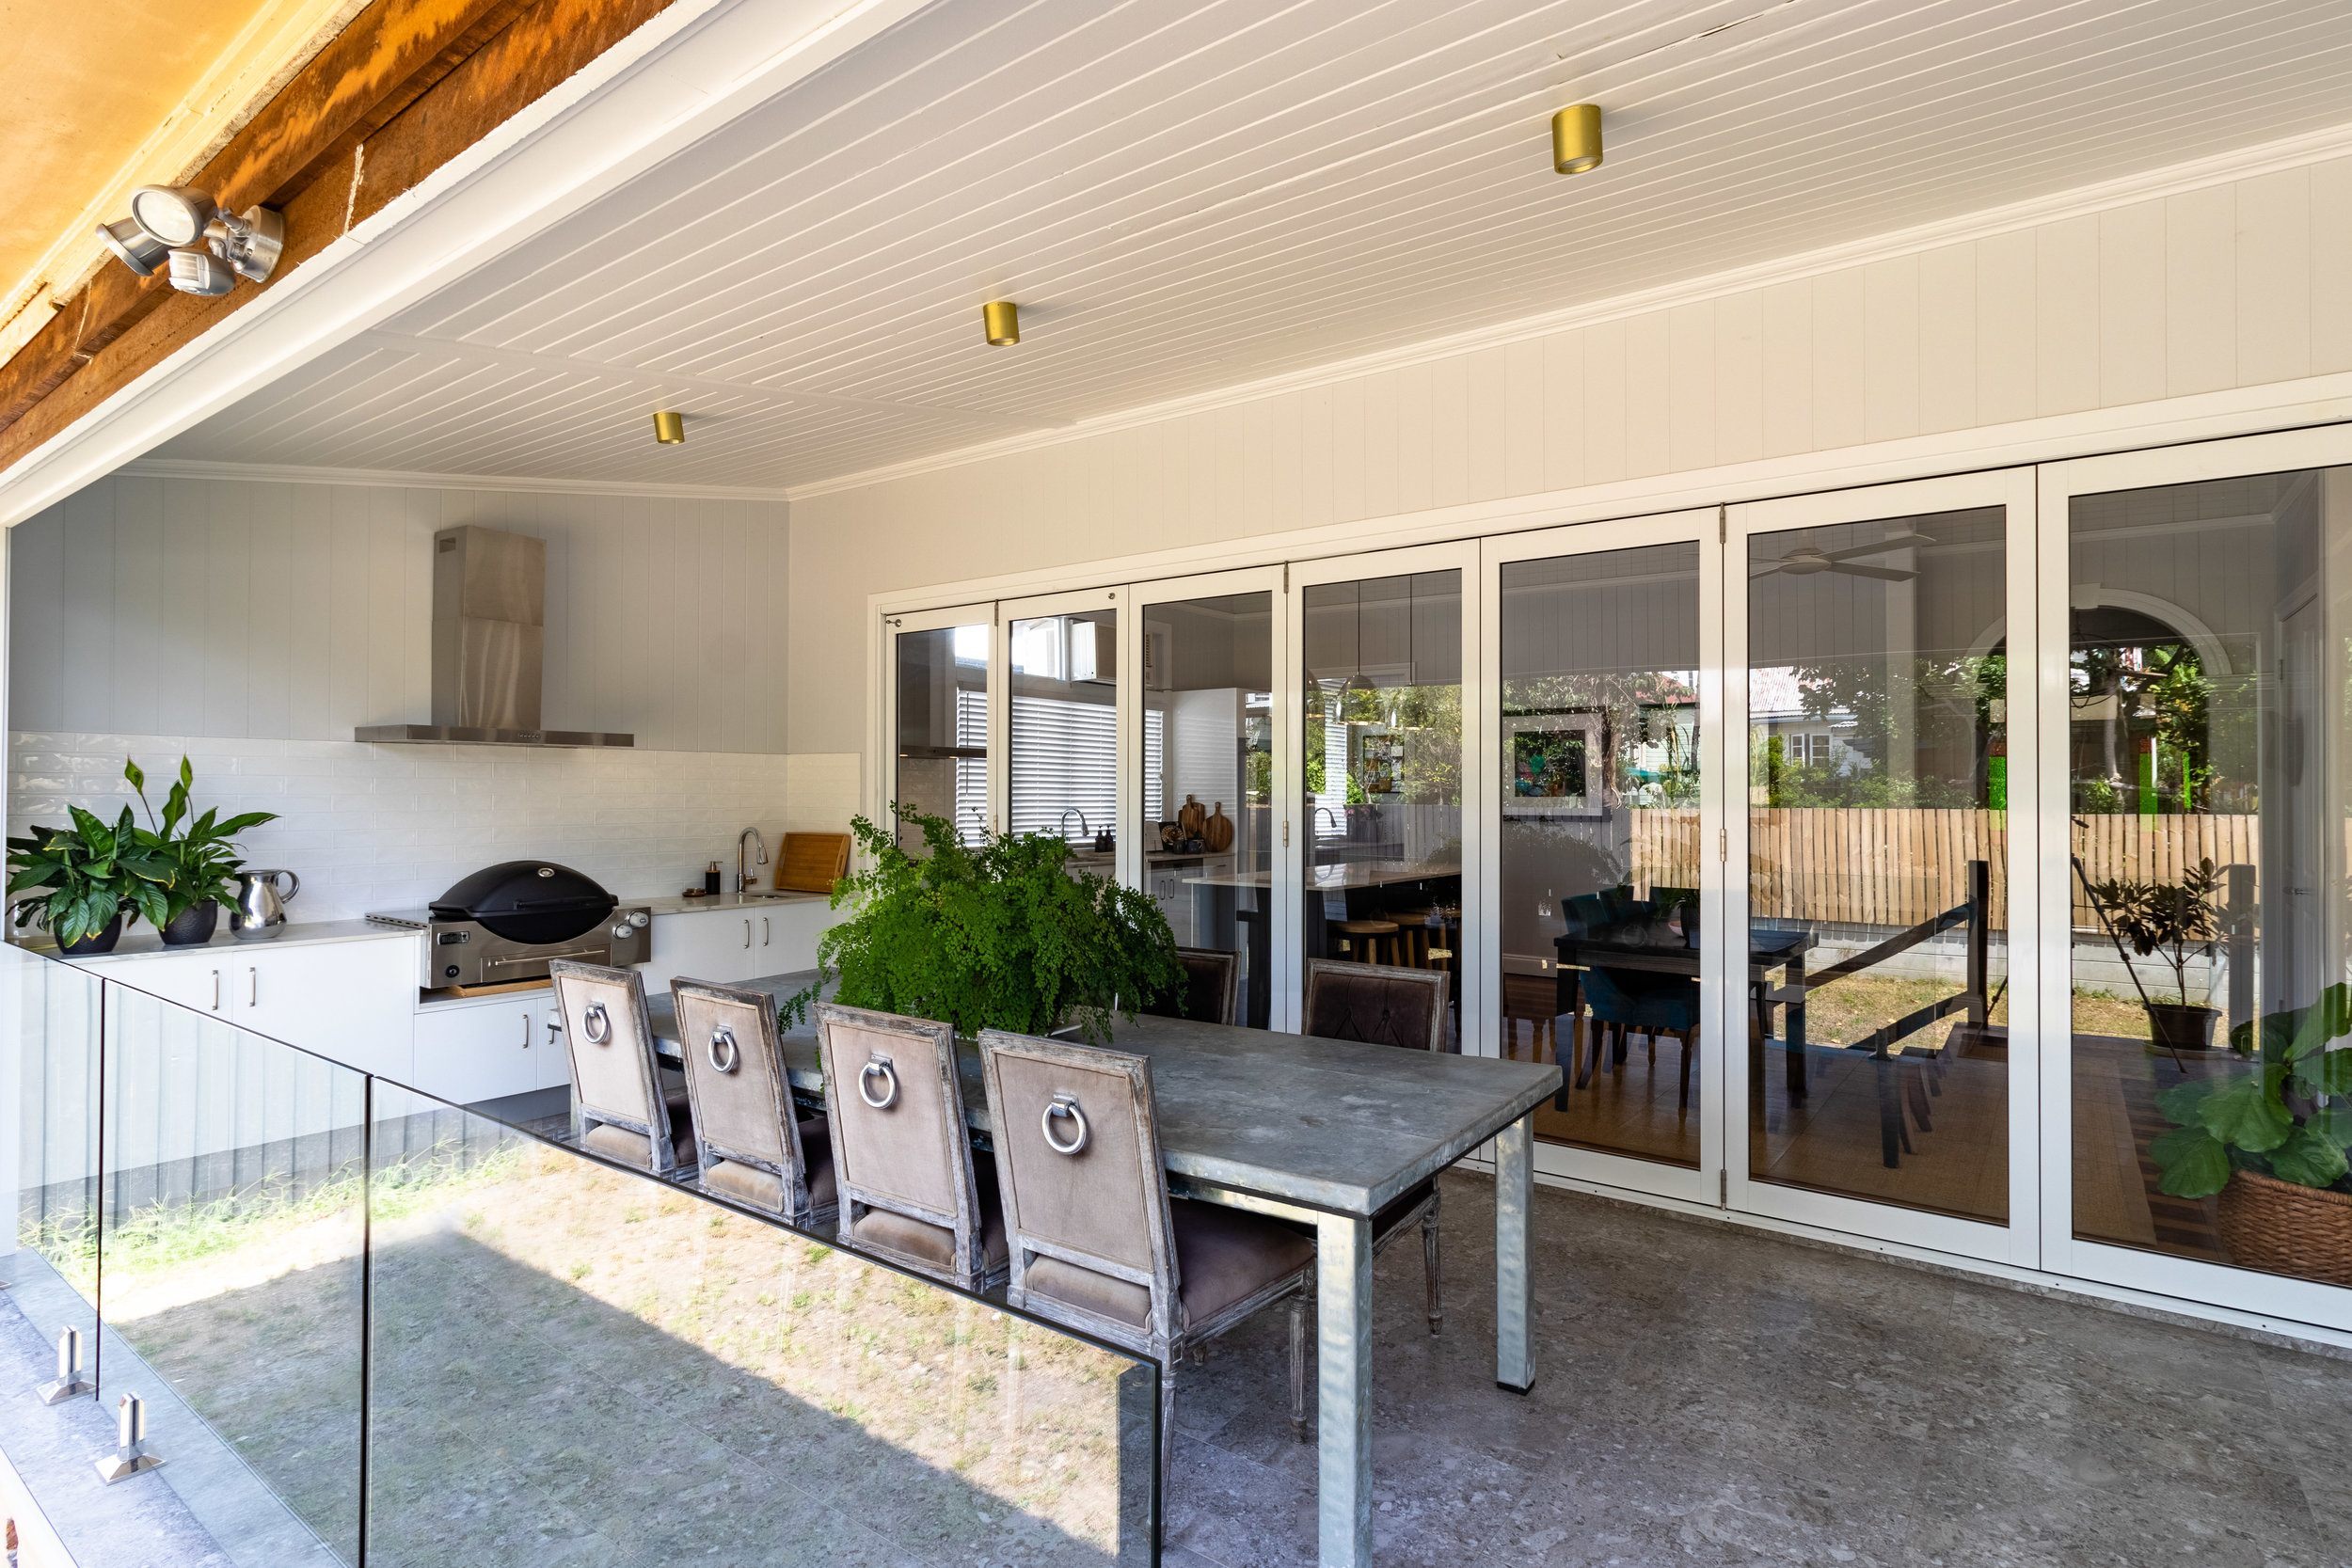 Decks, Carports and Patios. - You might love your Brisbane home on the inside, but perhaps the outside needs a little work. At JMH Design we can design carports, decks and patios to suit your outdoor needs.Maybe you're looking for an outdoor kitchen and an expansive deck to enjoy the warm summer nights entertaining friends and family.Or a patio that makes the transition from inside to outside feel seamless.Or perhaps you're after a carport to keep your car safe during winter storms.Whatever outdoor additions you need for your home JMH Design can draft an innovative plan that will meet your needs.